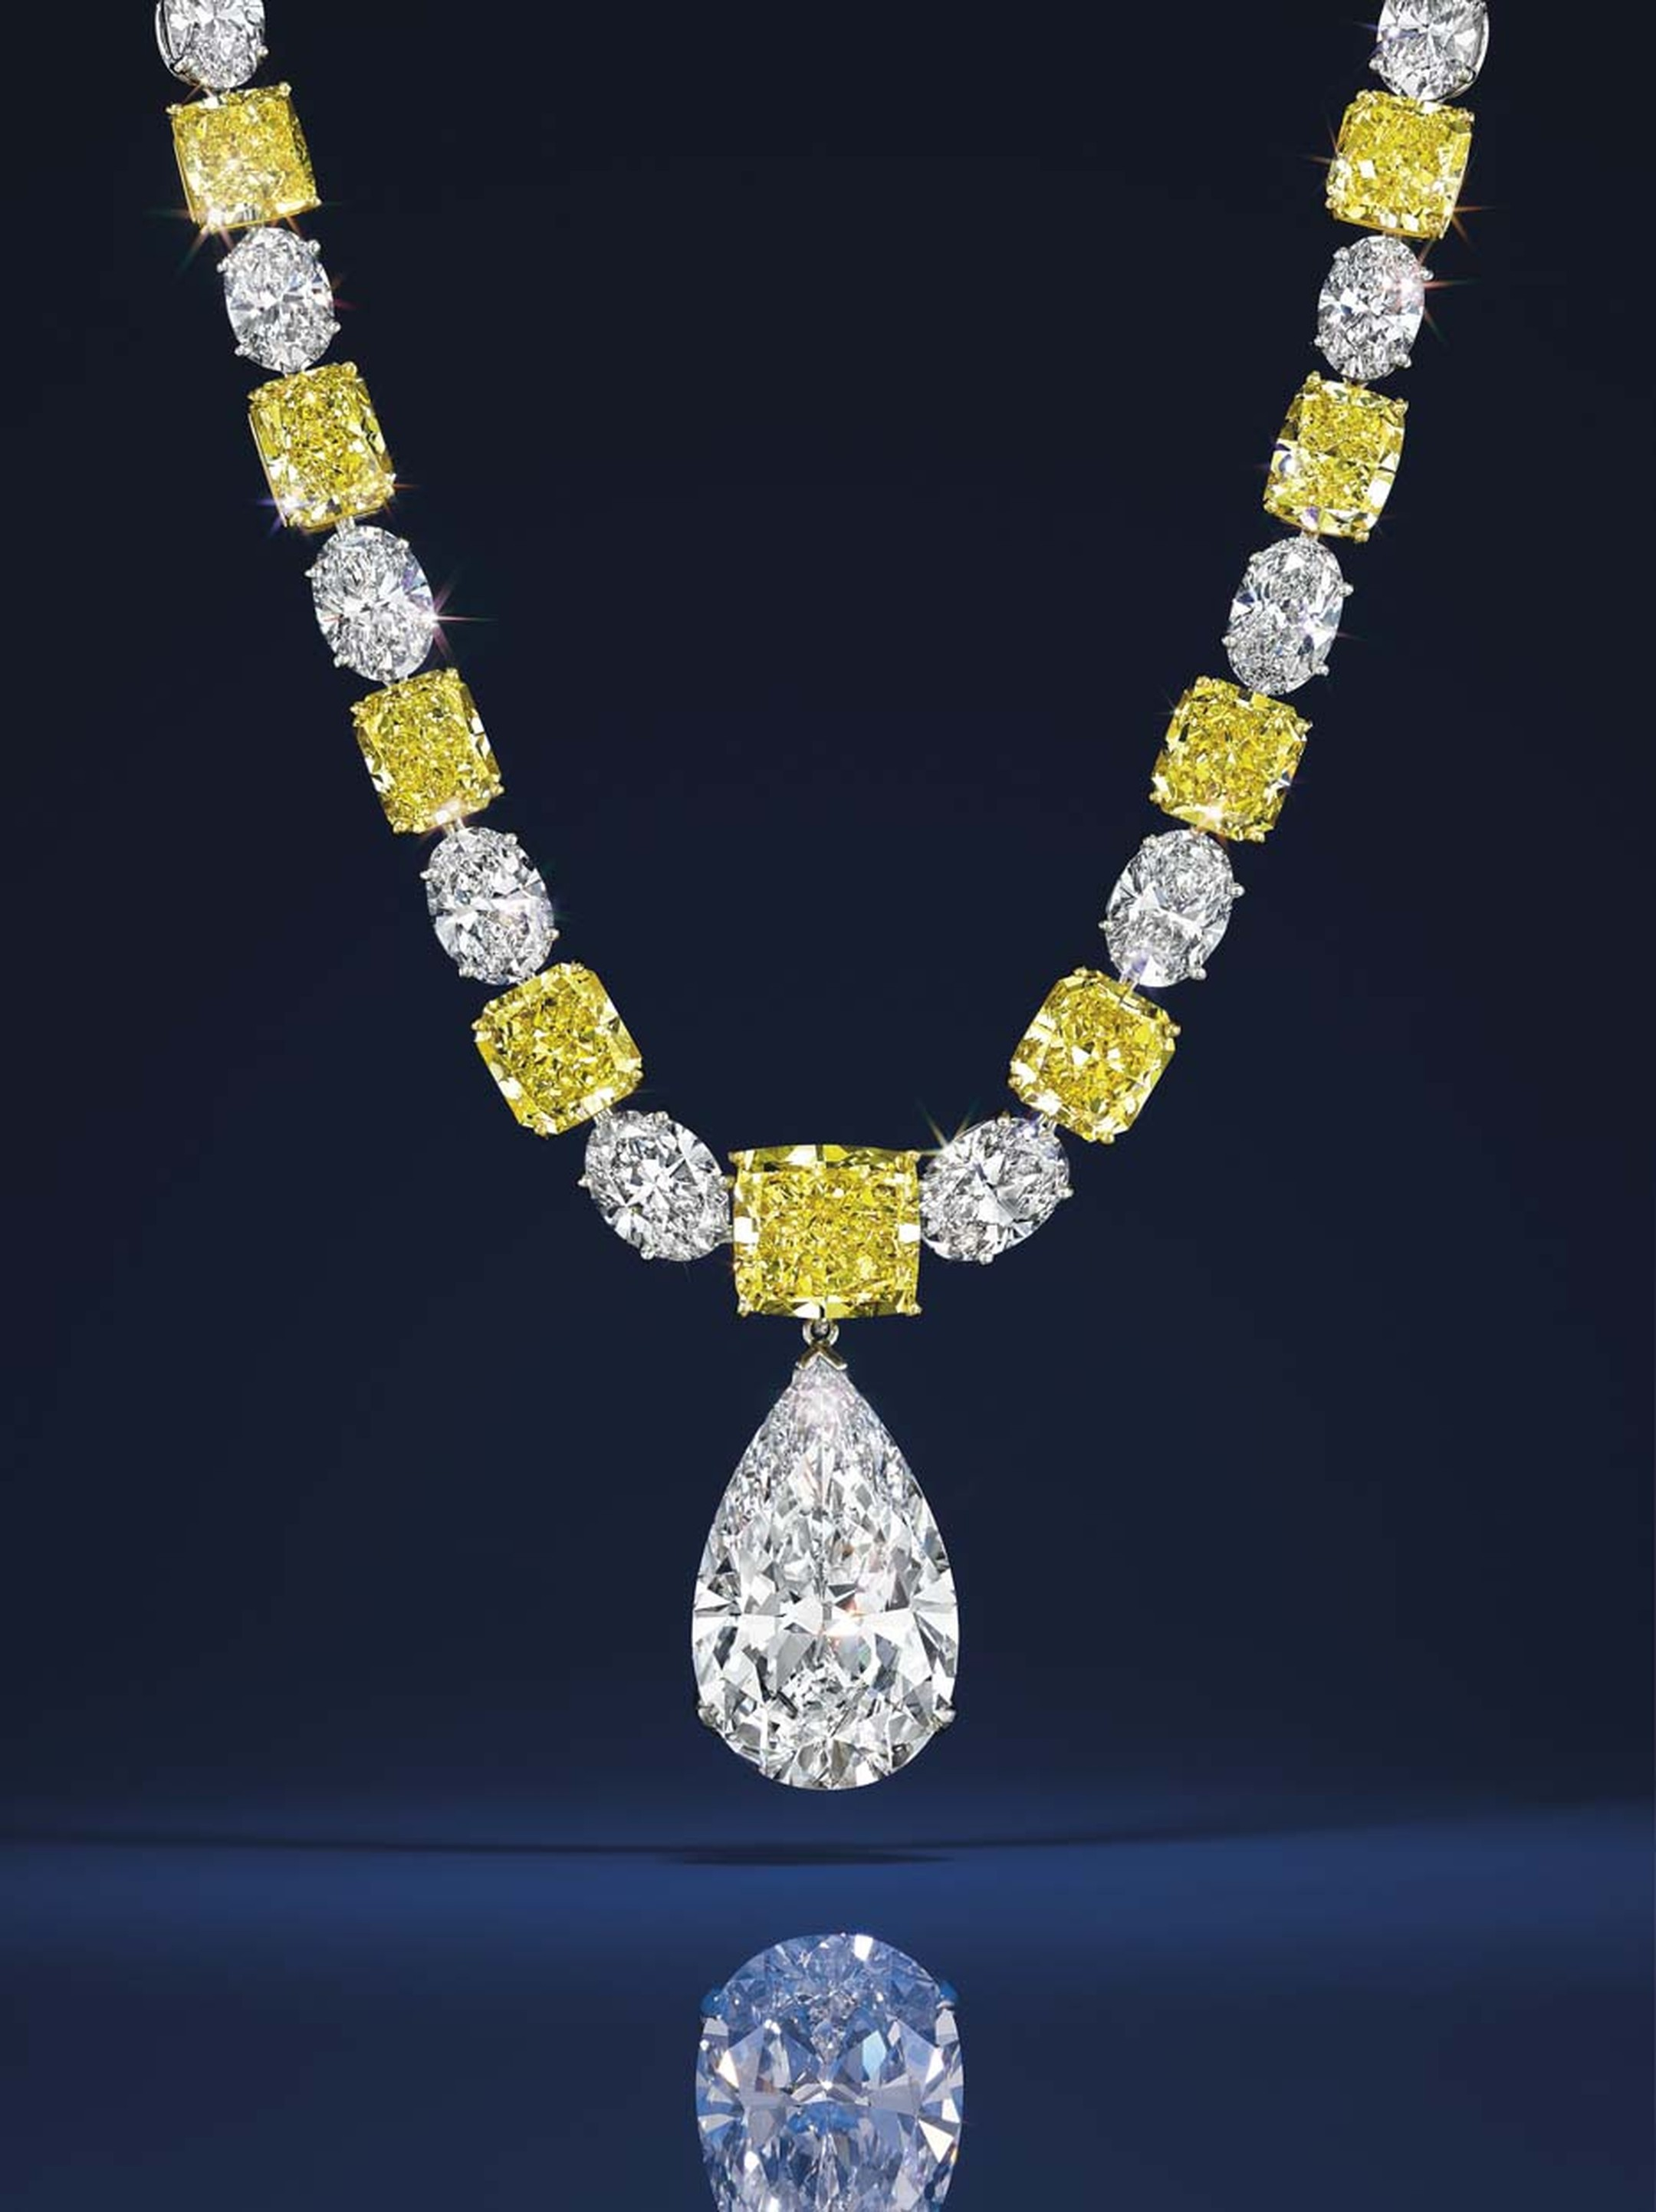 Graff white and yellow diamond necklace featuring a pear-shape diamond pendant of 25.49 carats. Estimate: $500-700,000.